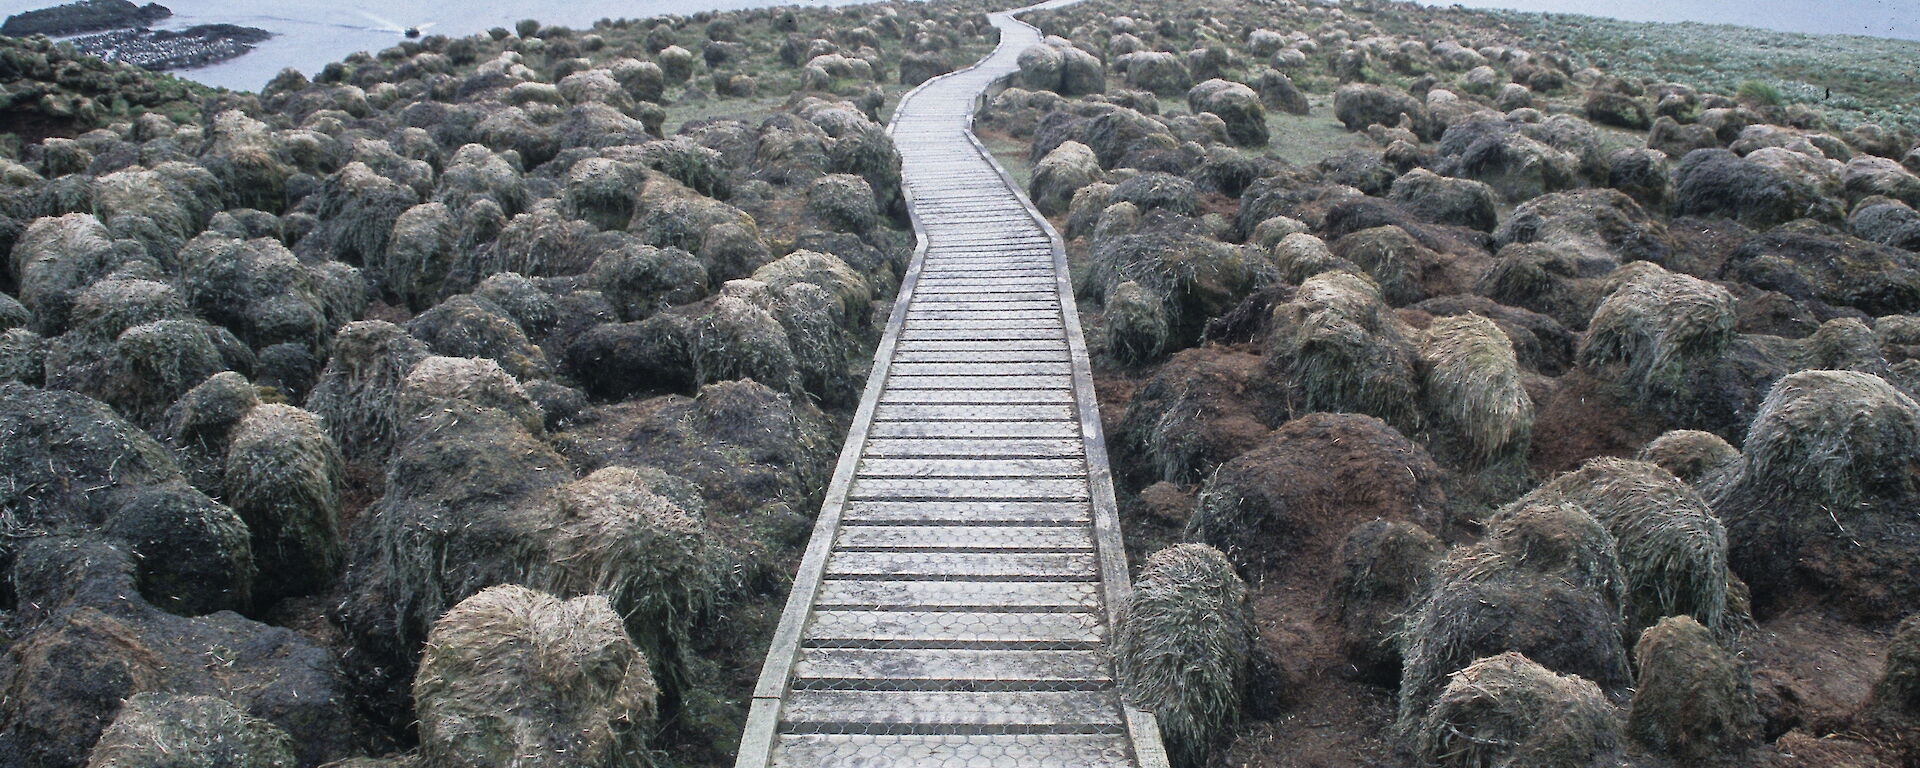 The tourist boardwalk at Sandy Bay in 2005 showing tussock grasses degraded by grazing pressure